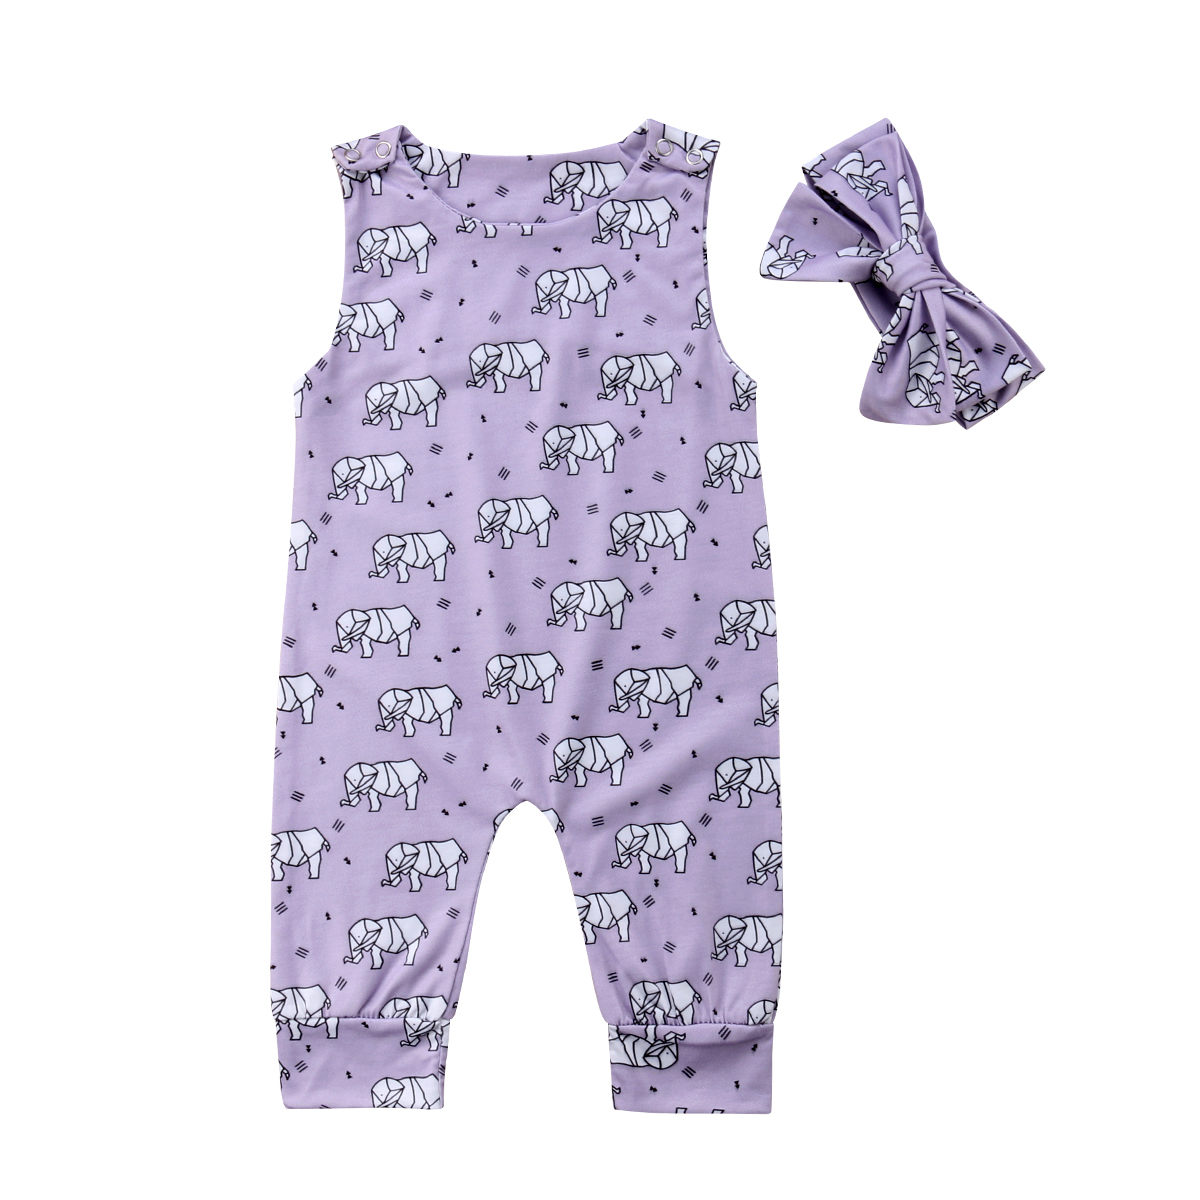 Newborn Infant Toddle Baby Girls Sleeveless Romper Jumpsuit Headband Clothes Cotton Outfit Set Cute Baby Clothes 6M-3T